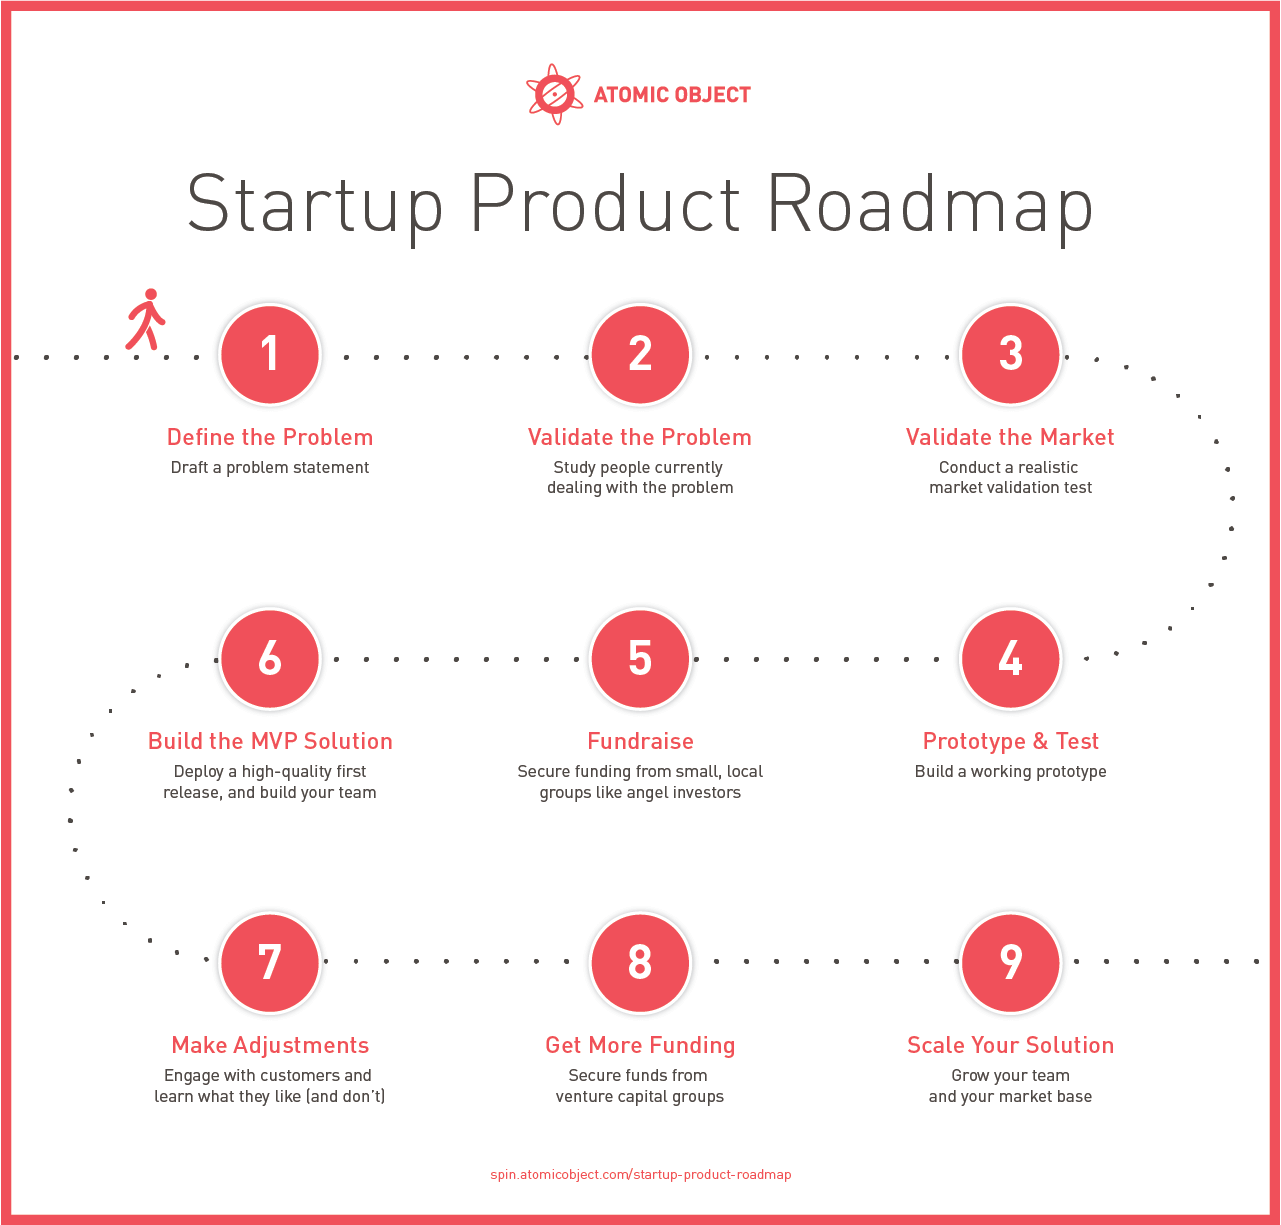 An Overview of the Startup Product Roadmap